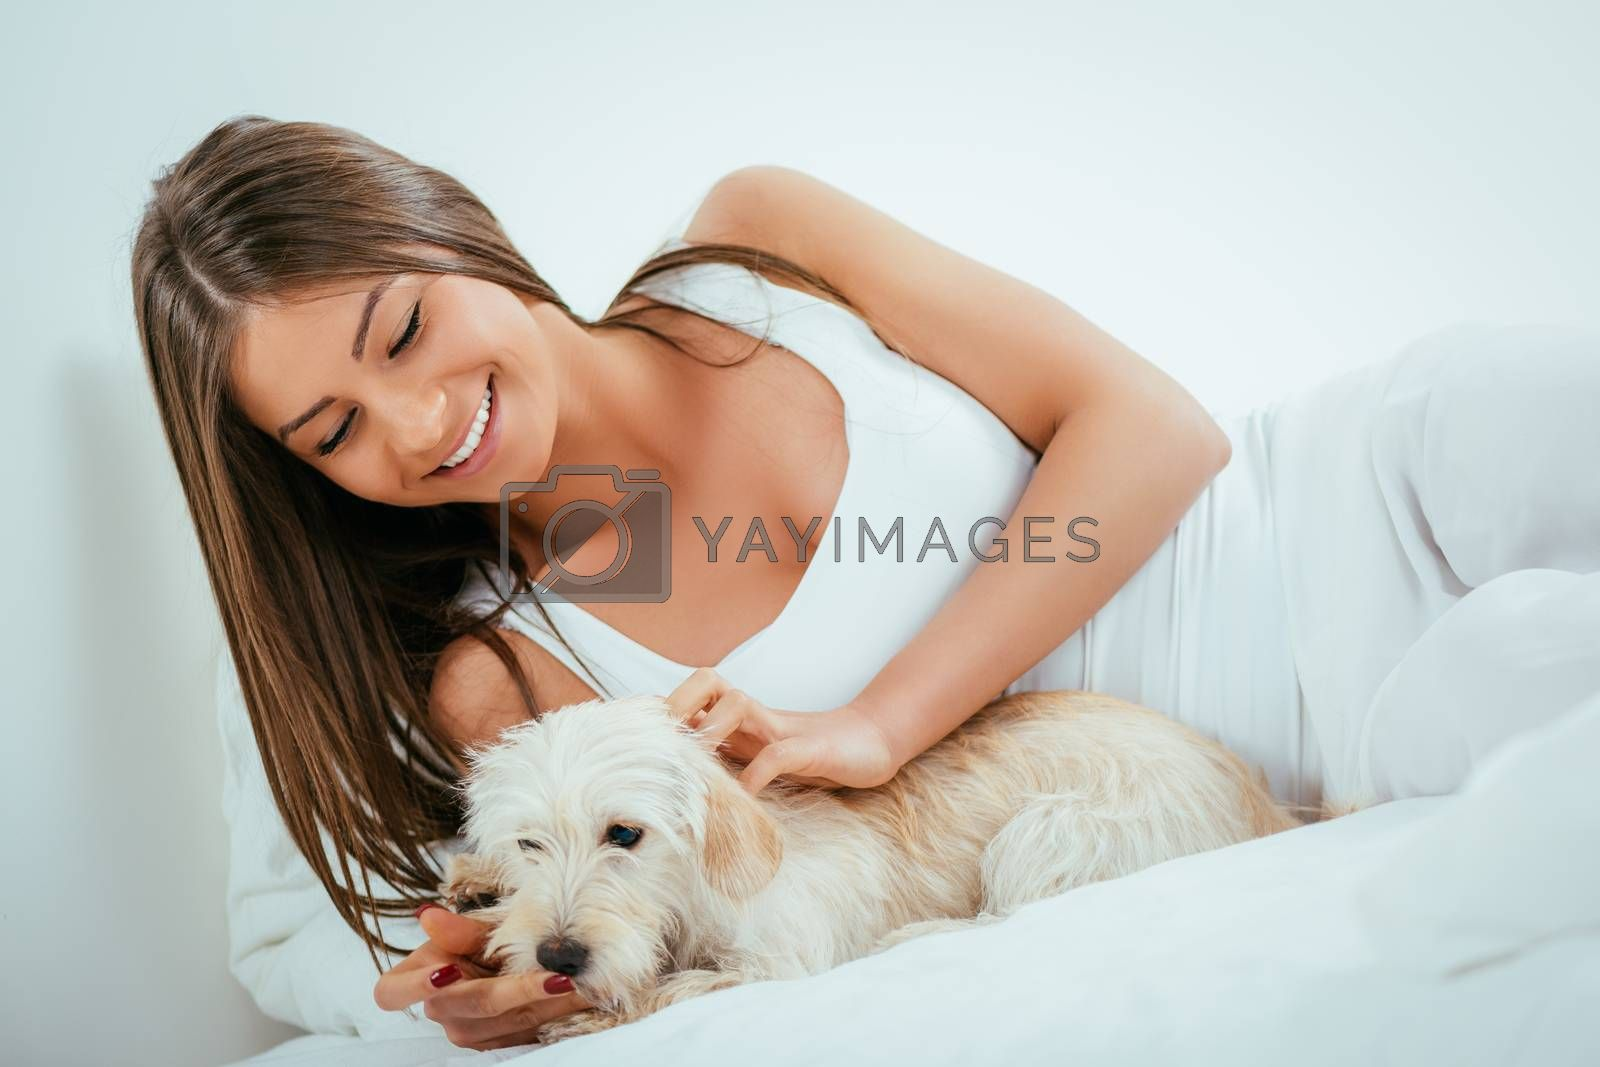 Beautiful young woman and her dog relaxing in bed in the morning.